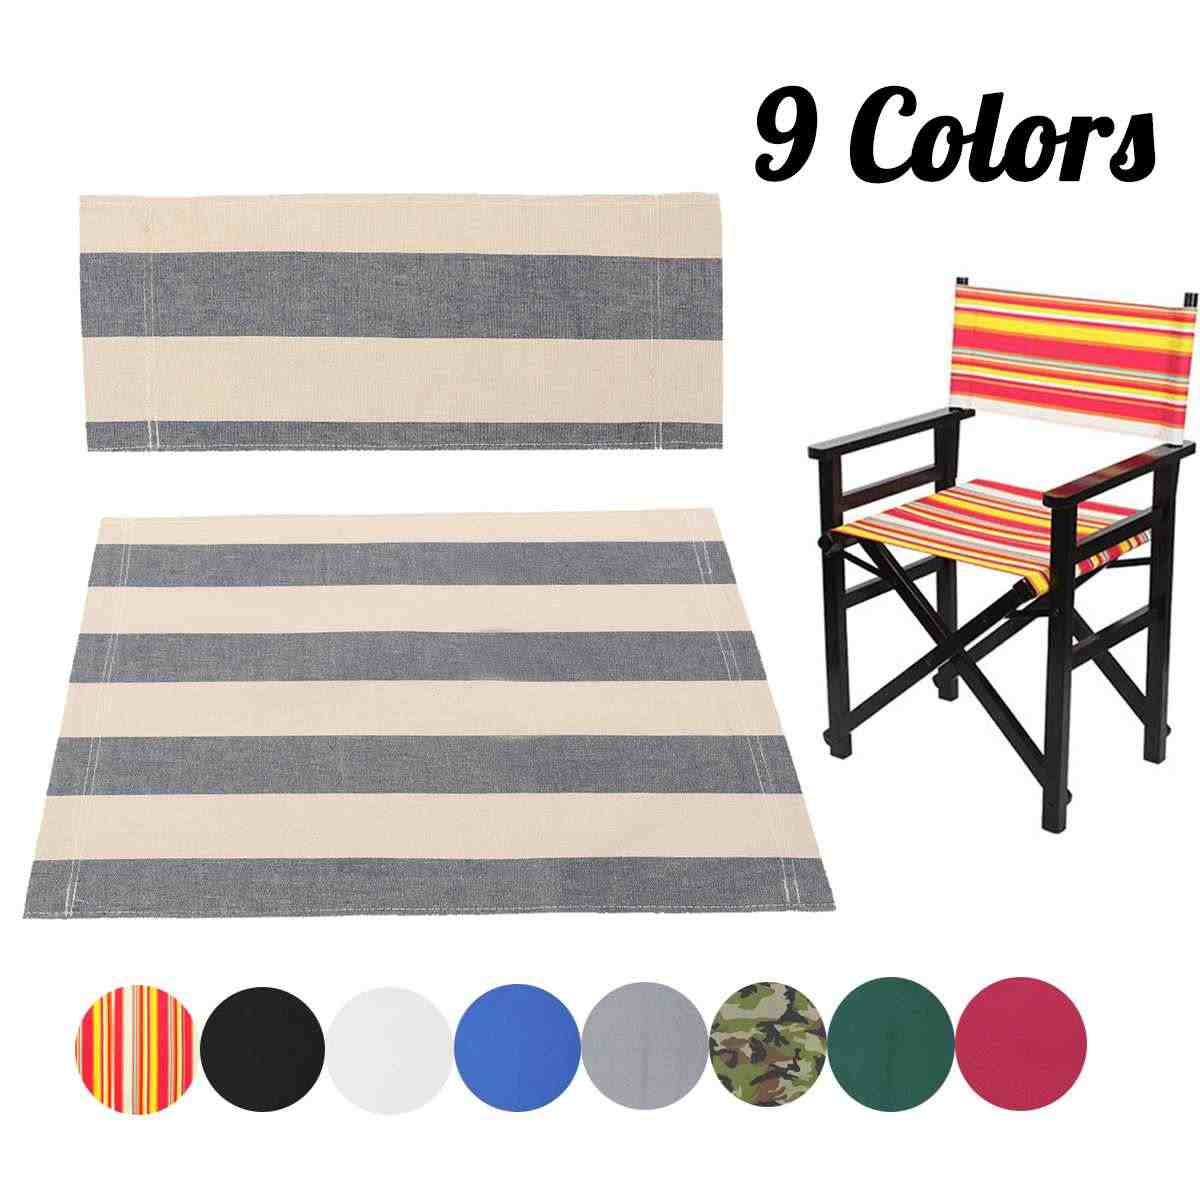 Enjoyable High Quality Red Orange Black For Directors Chairs Cover Caraccident5 Cool Chair Designs And Ideas Caraccident5Info